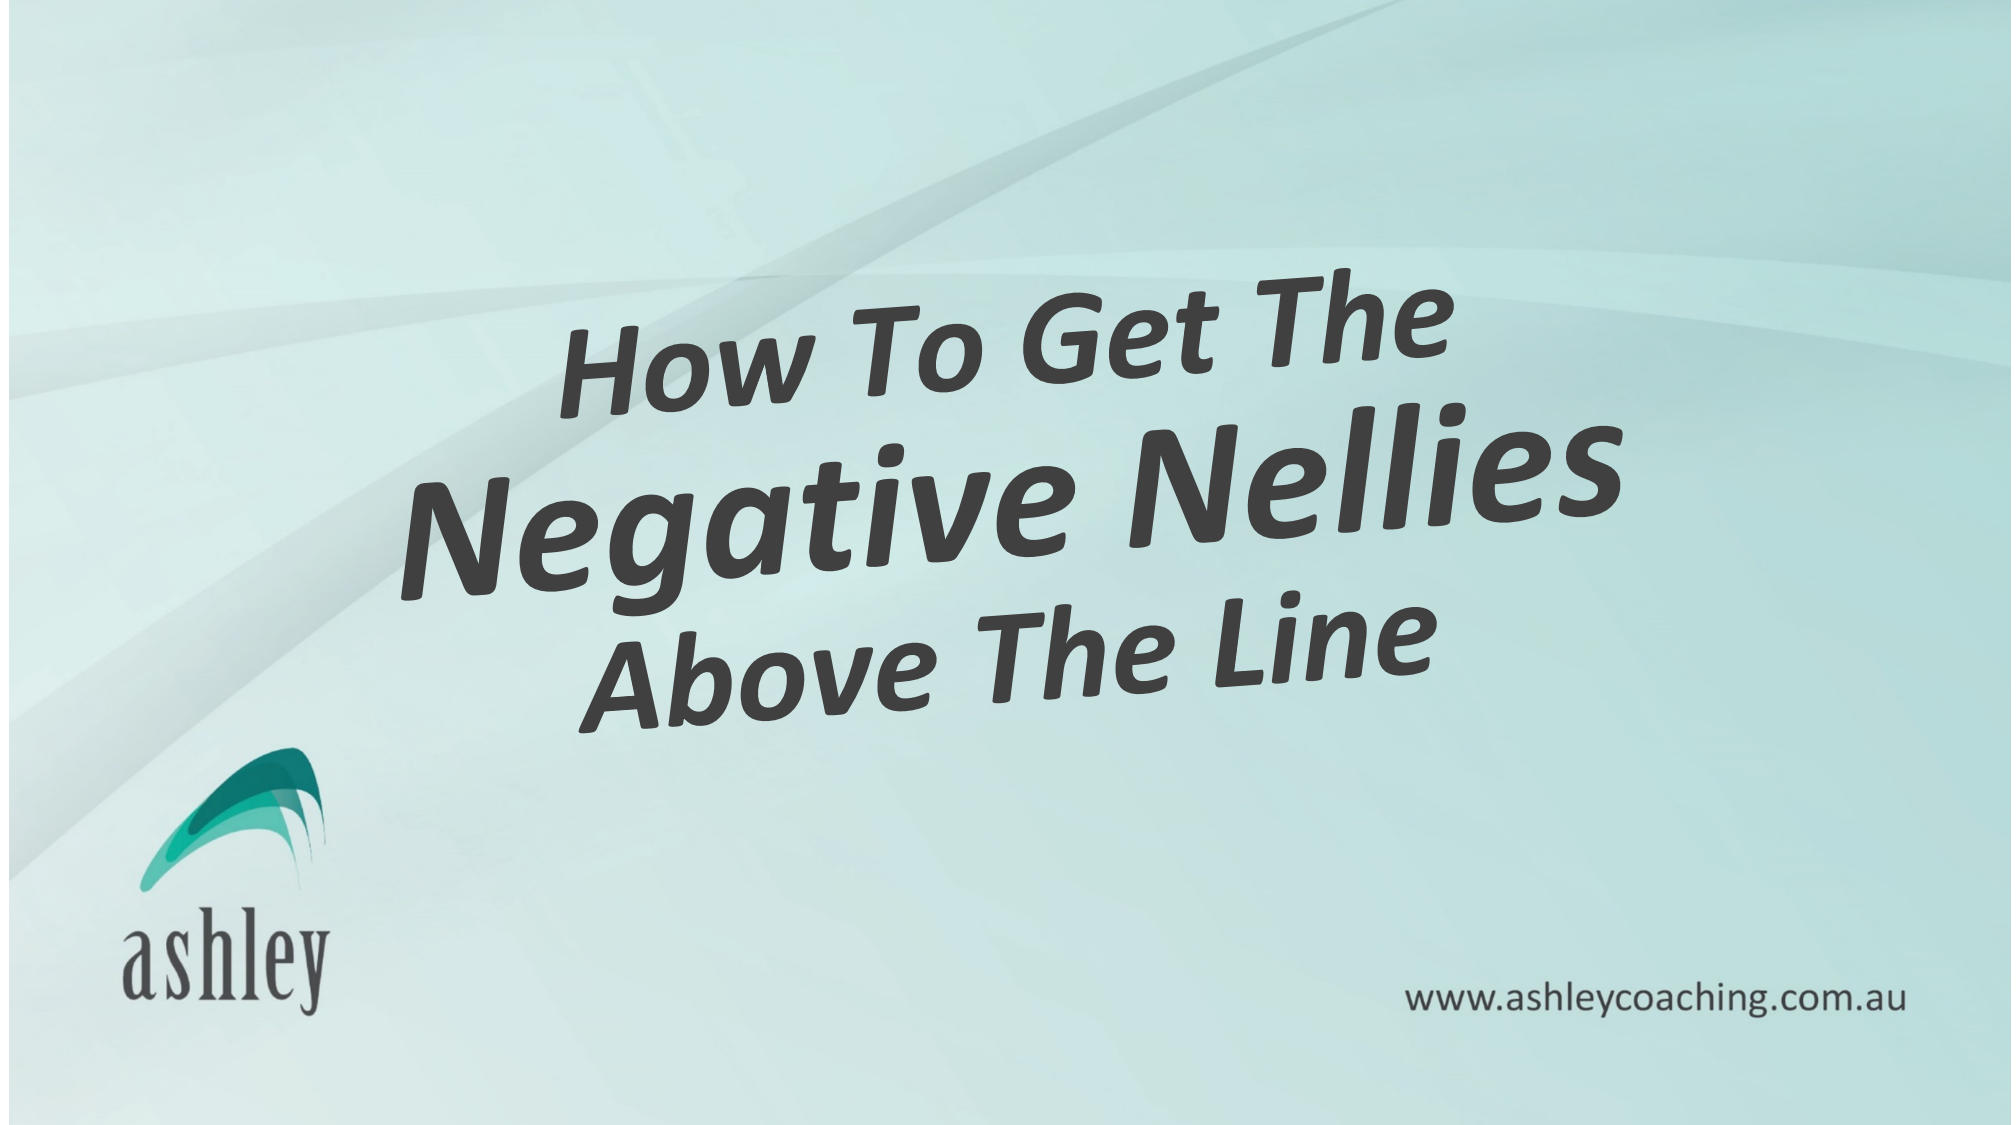 How To Get The Negative Nellies Above the Line